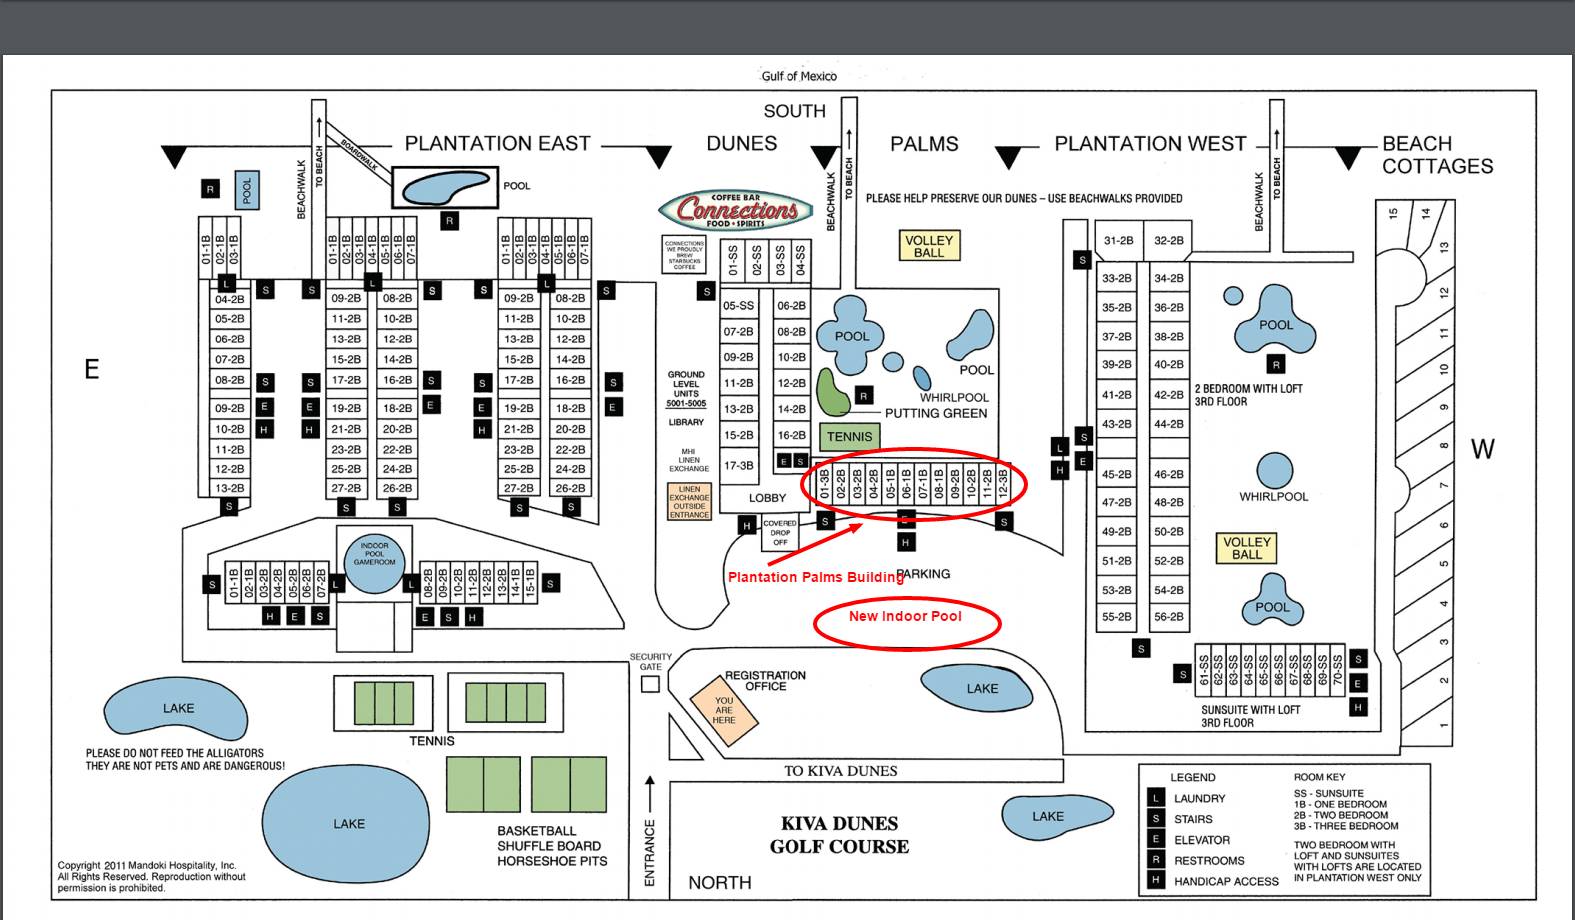 Plantation Palms Building and Amenities Map